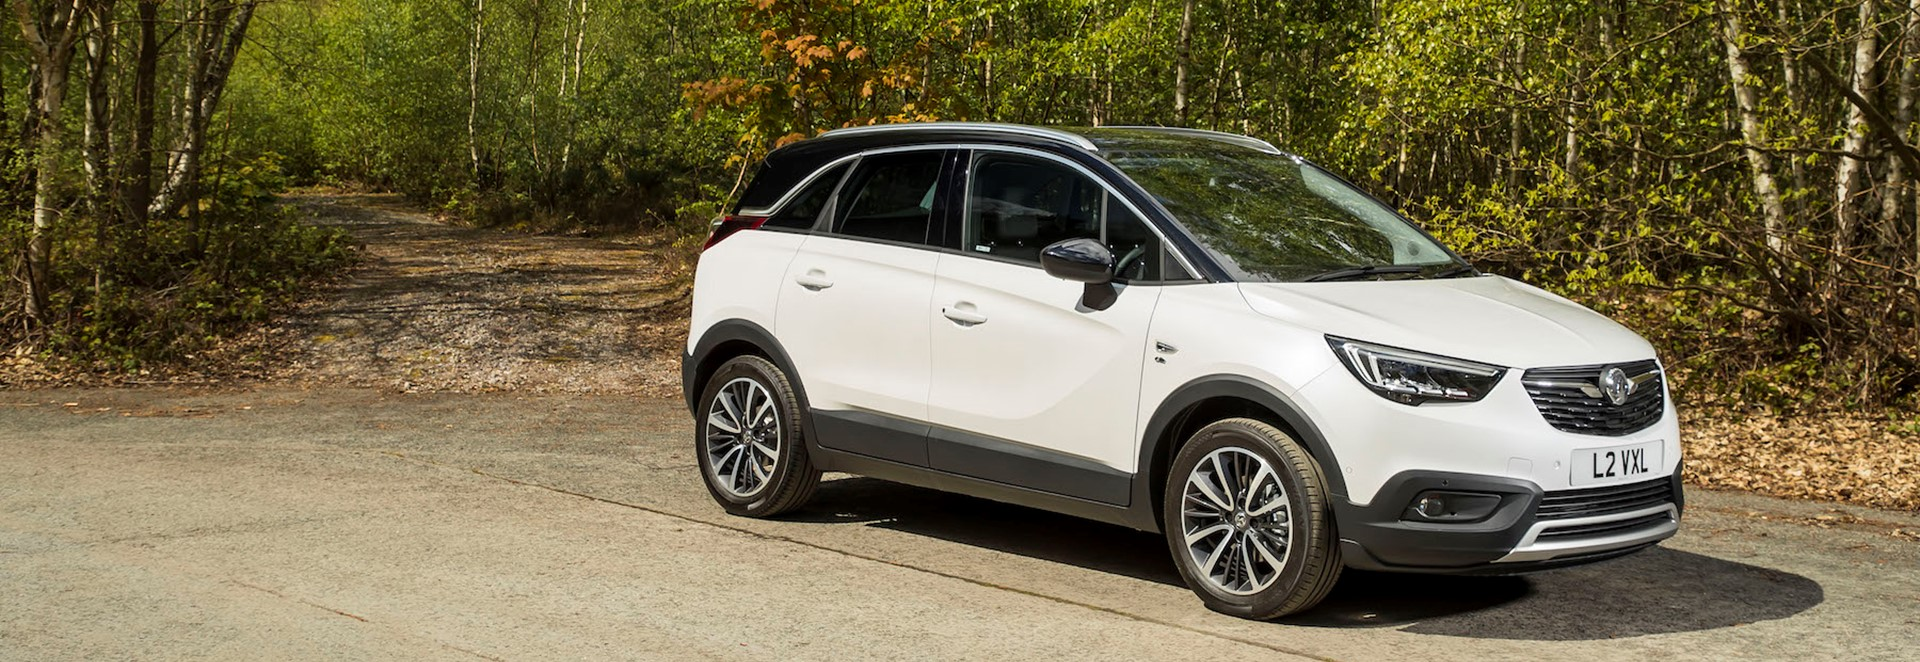 2017 Vauxhall Crossland X small crossover review